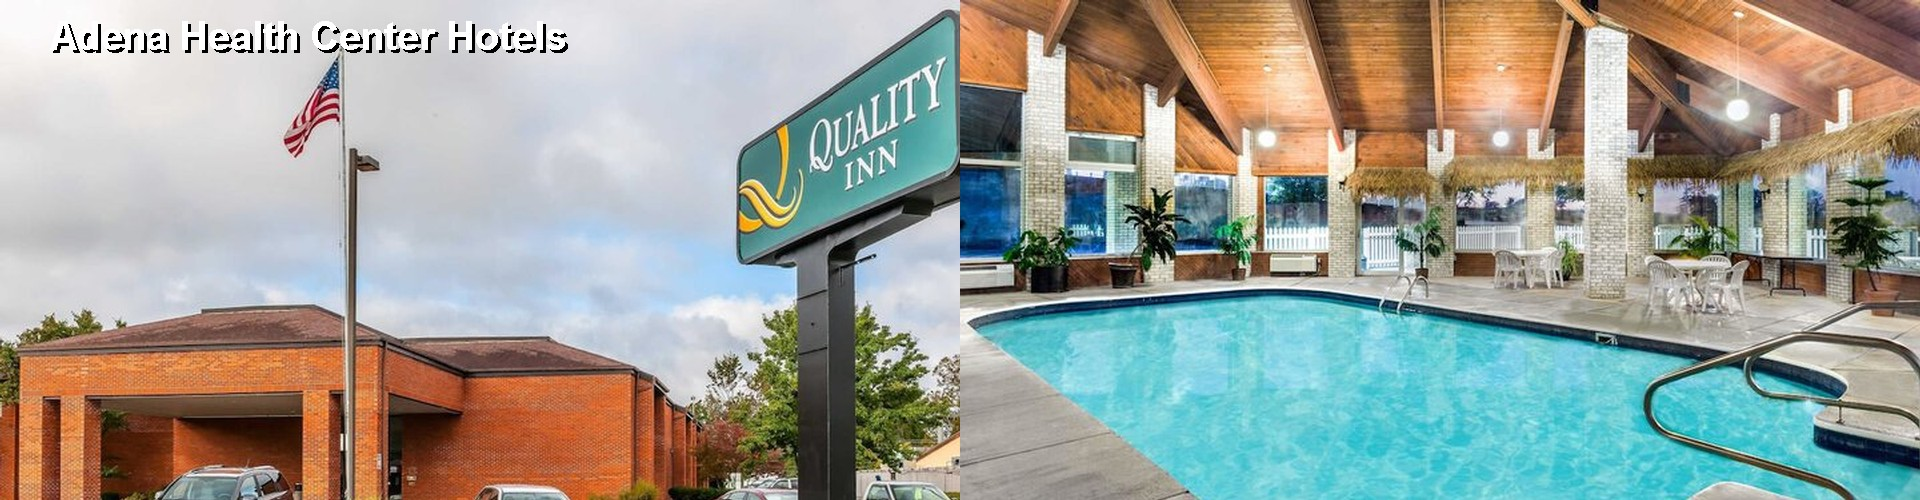 5 Best Hotels near Adena Health Center